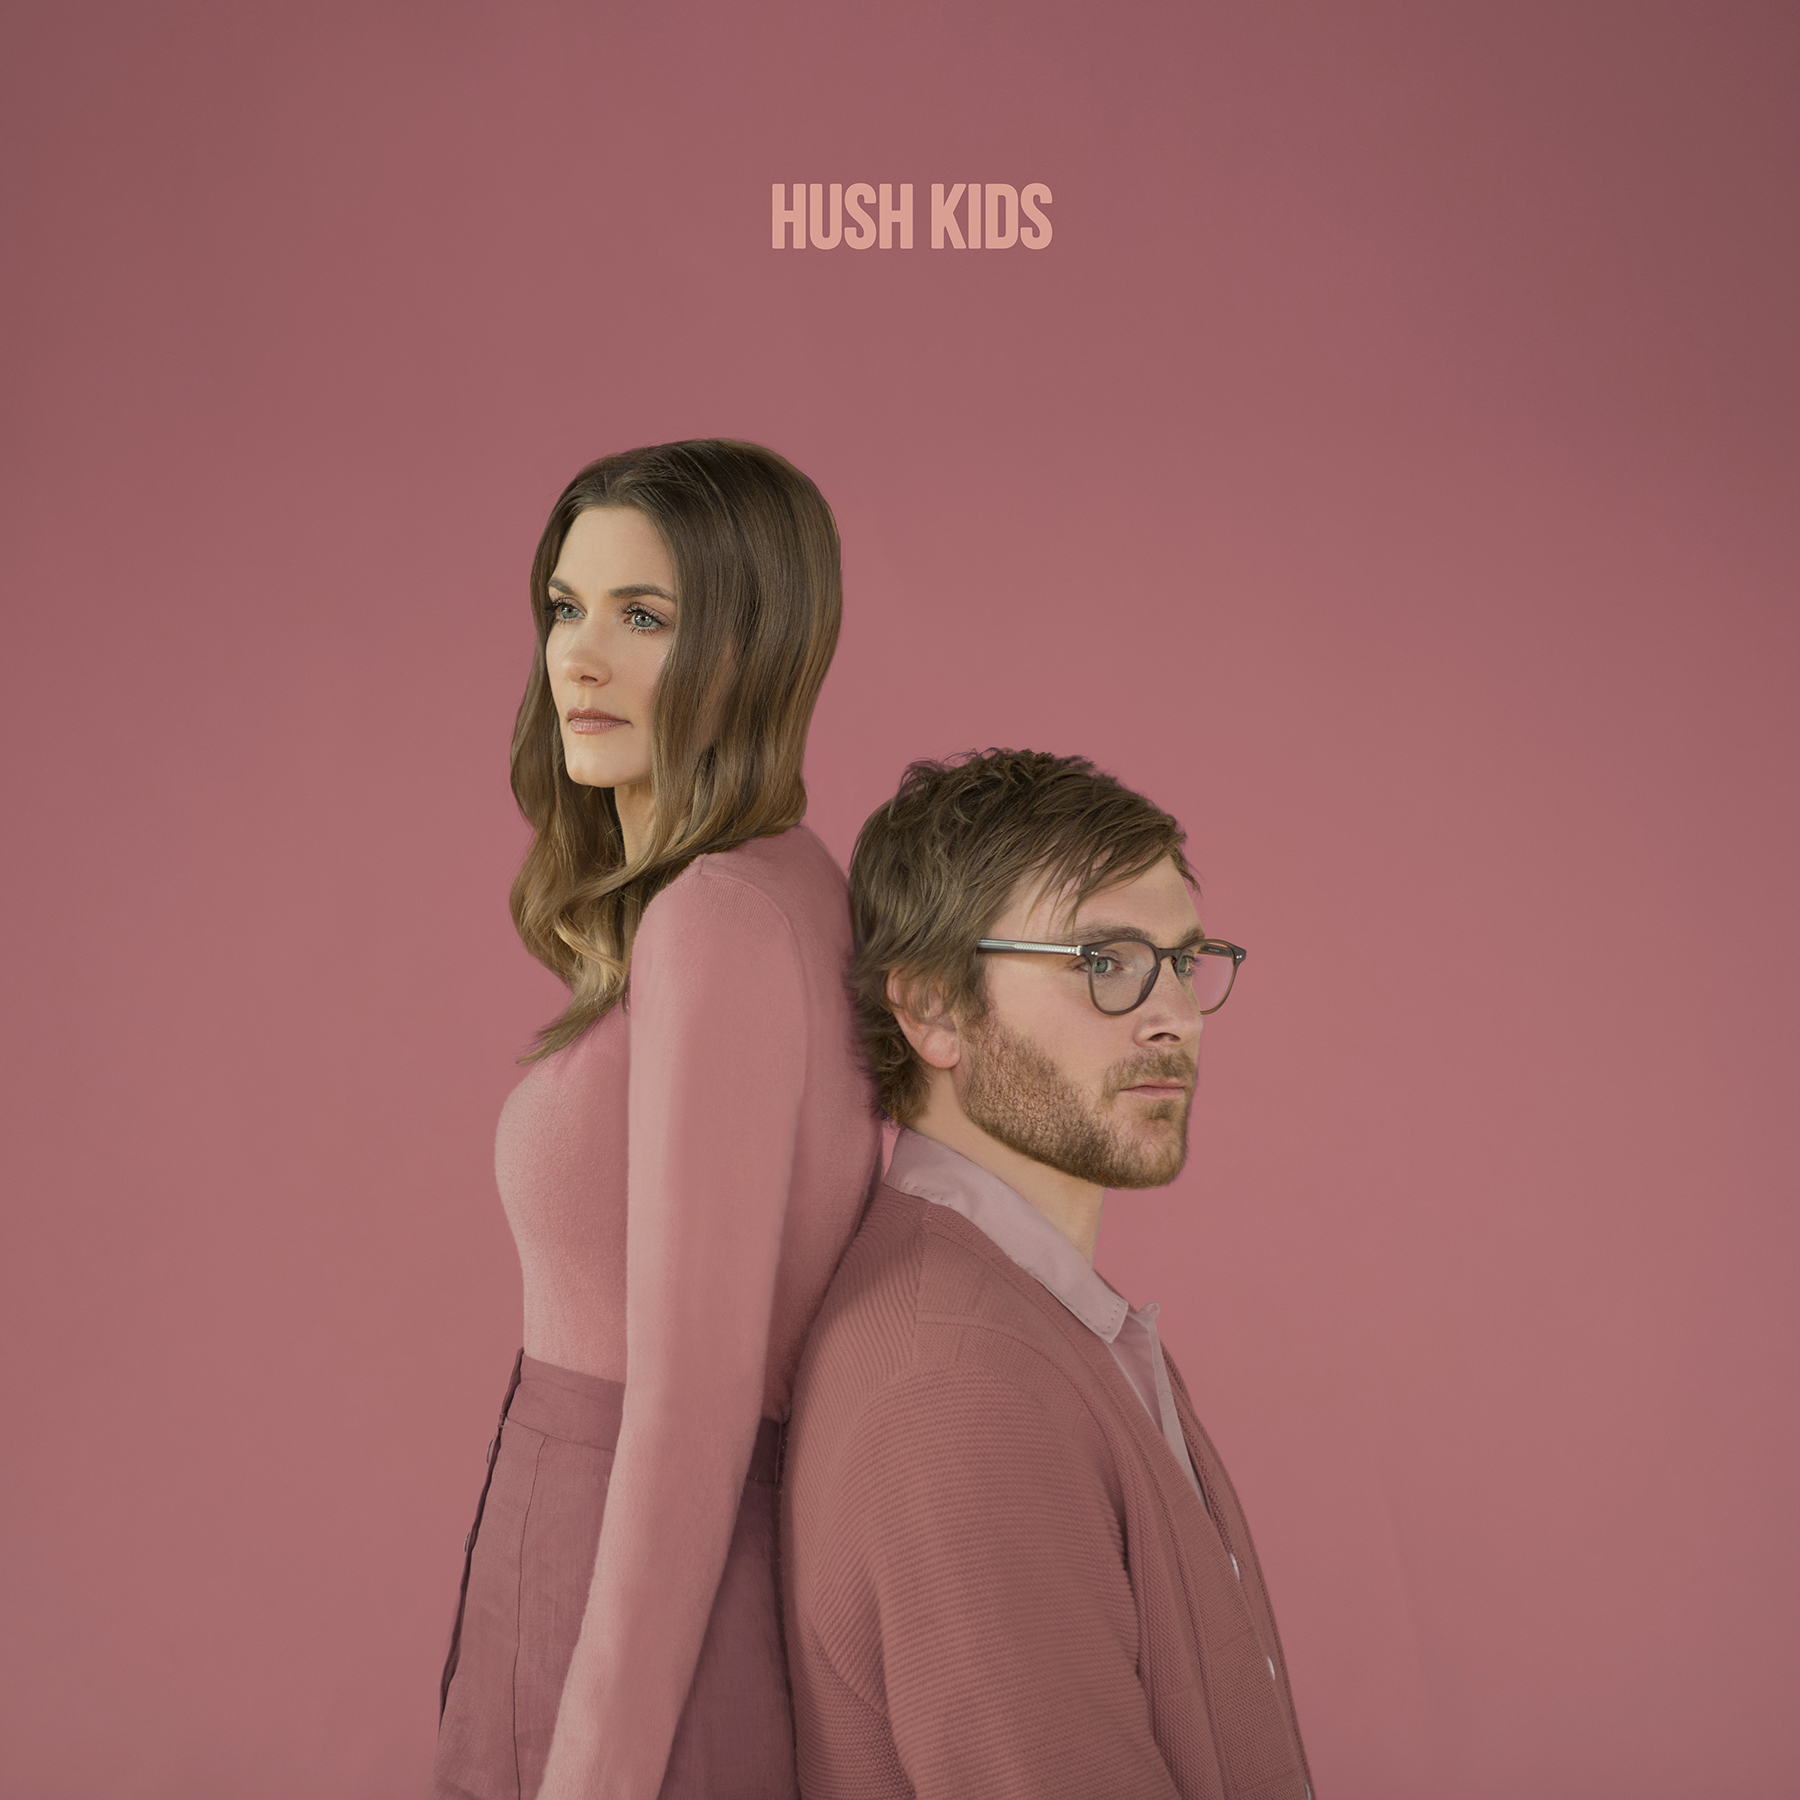 The first single from Hush Kids' self-titled debut album is here! Listen now  HERE .